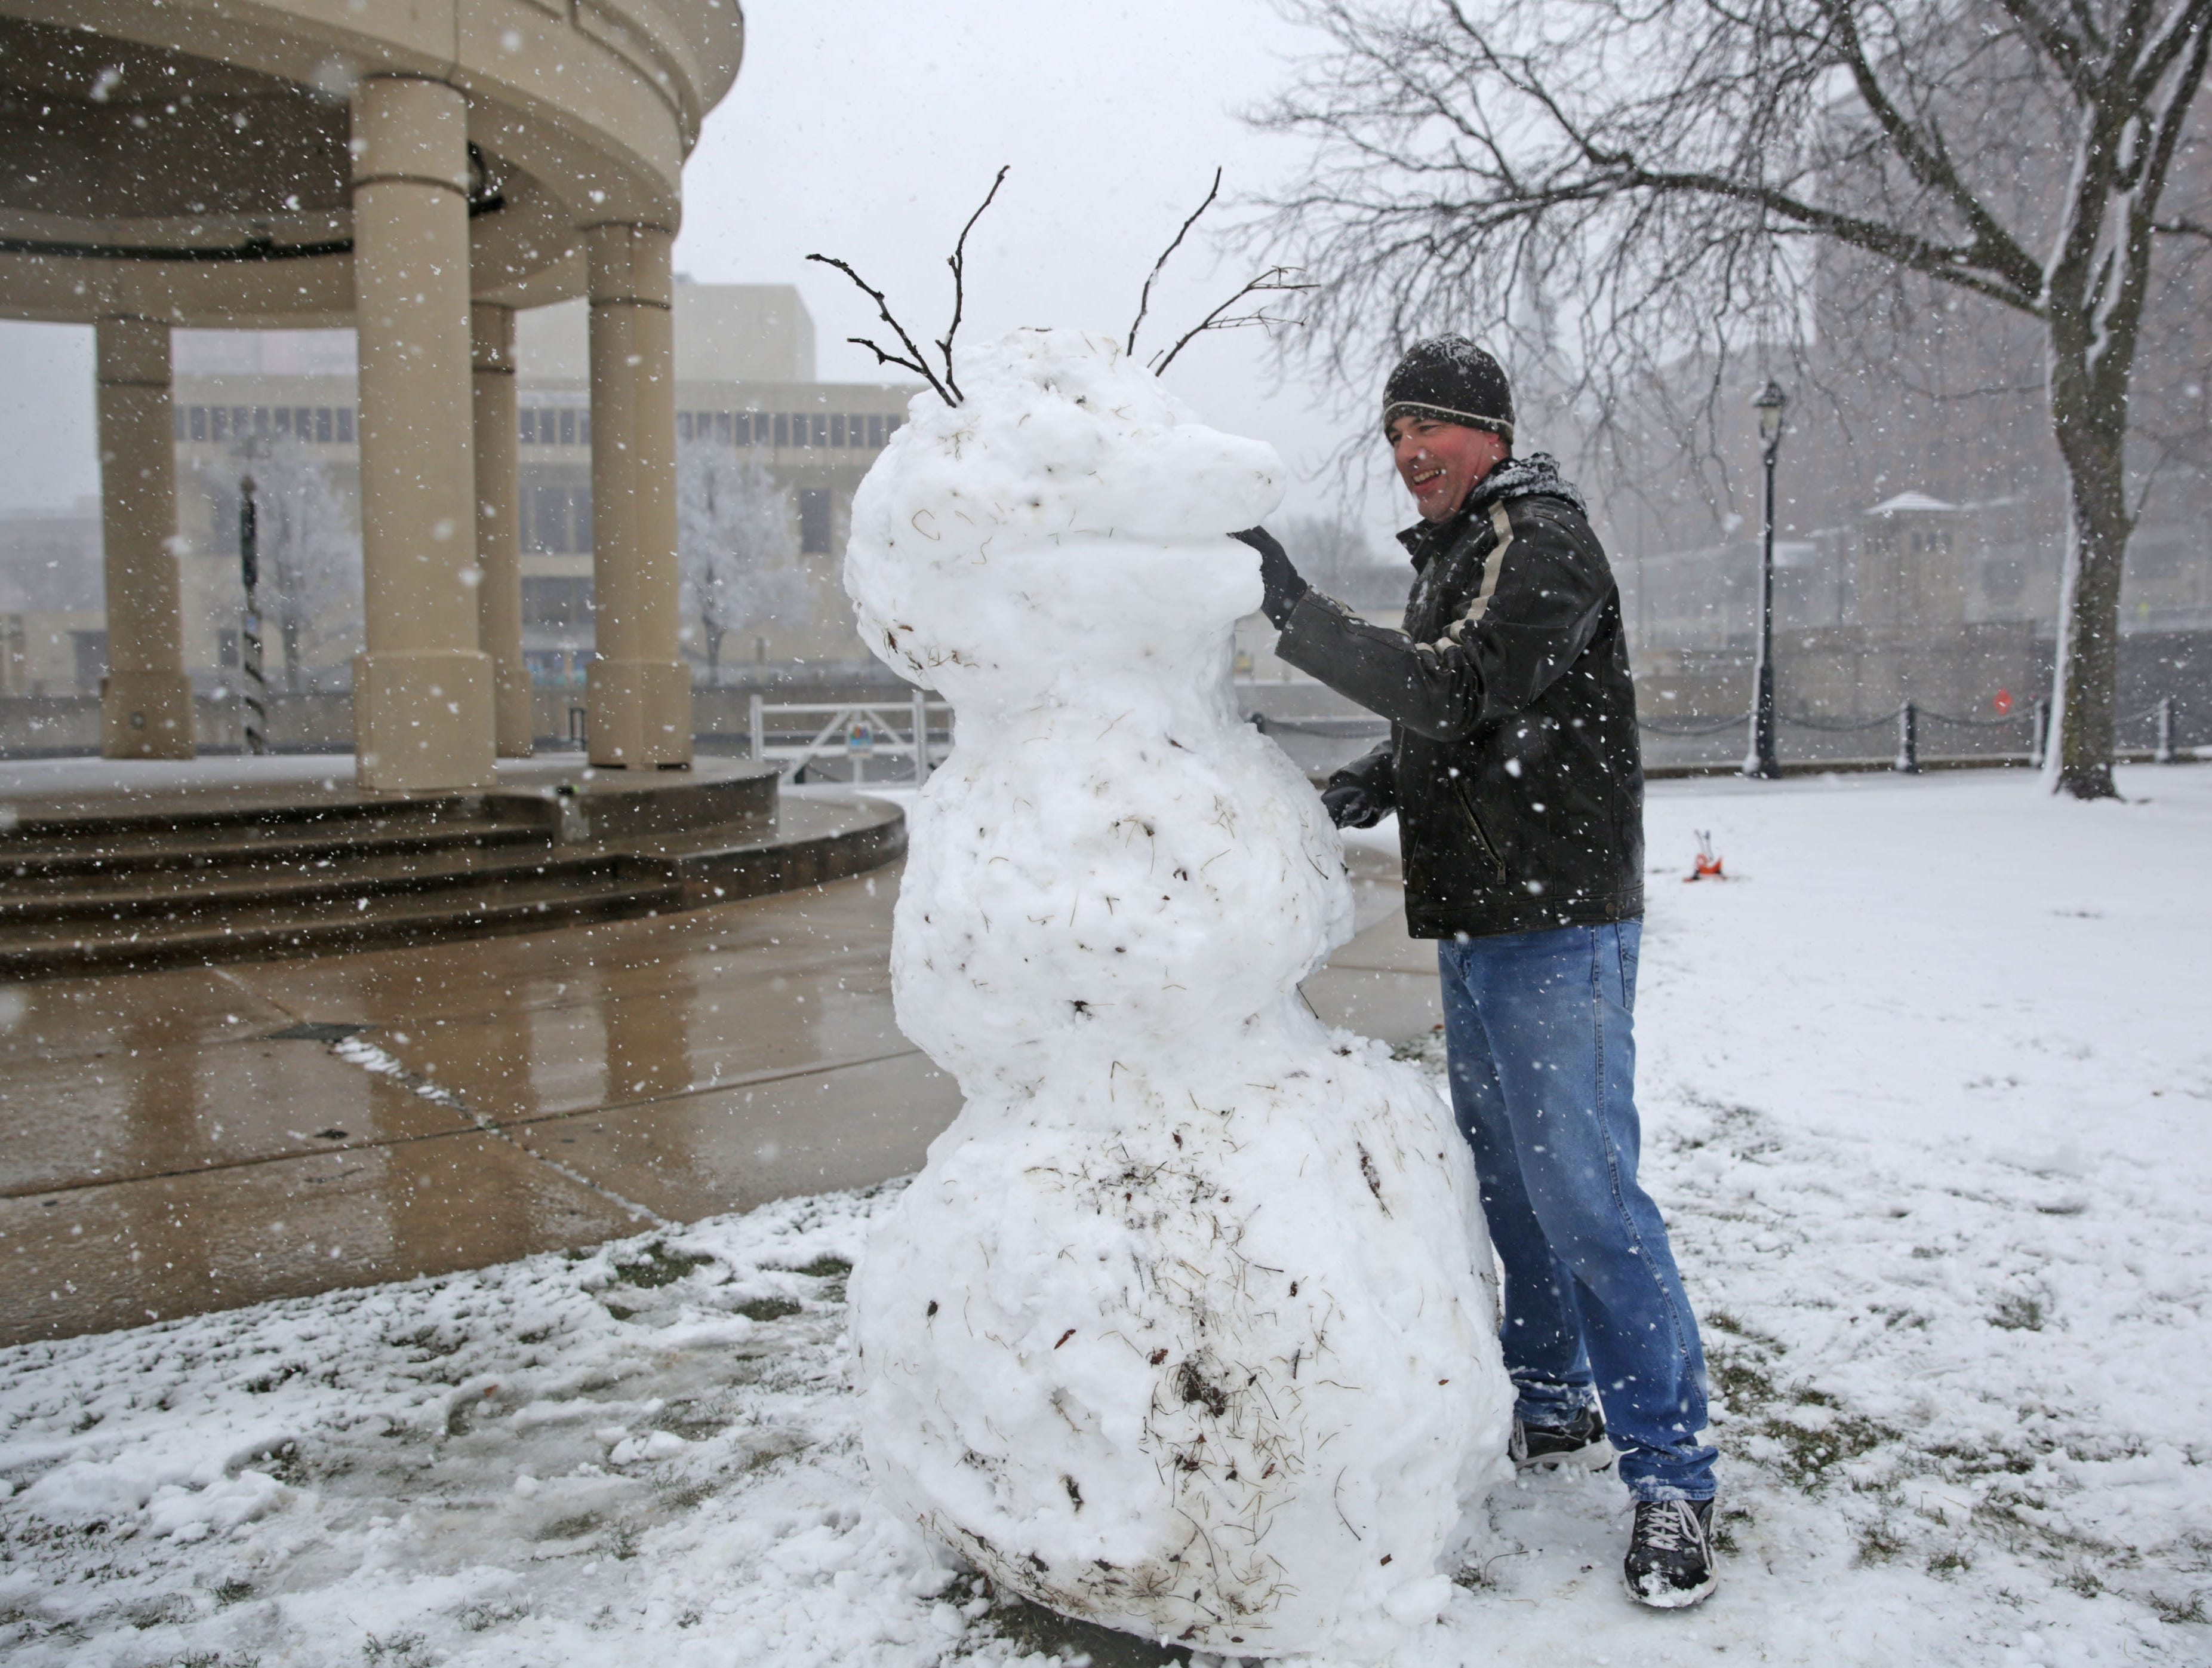 Jody Wyskochil of Milwaukee takes advantage of the spring snowfall Sunday as he builds a snowman at Pere Marquette Park resembling a buck to support the Milwaukee Bucks in the NBA playoffs in Milwaukee.